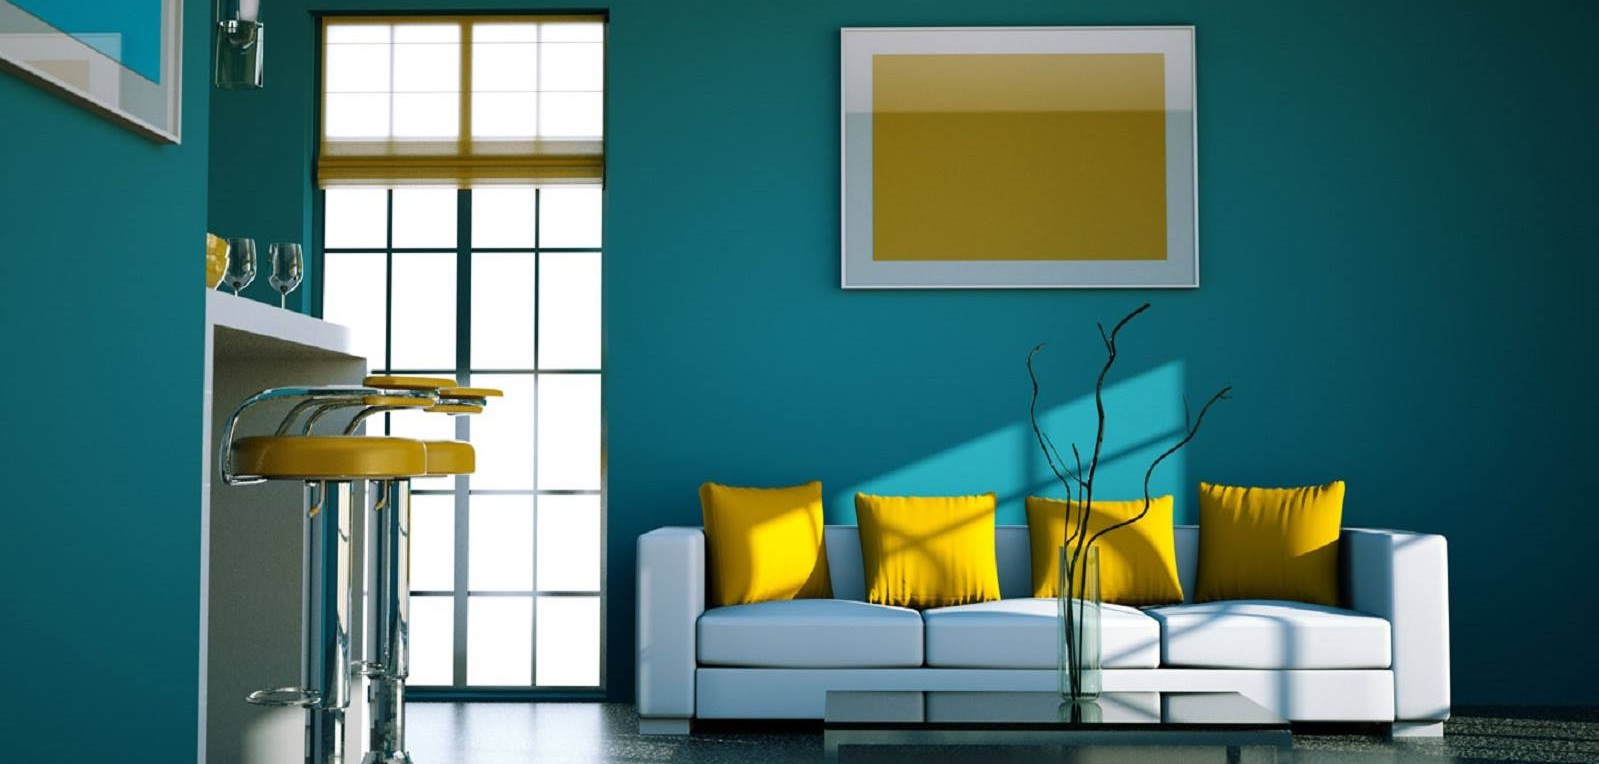 Bring Your Homes to lively colors